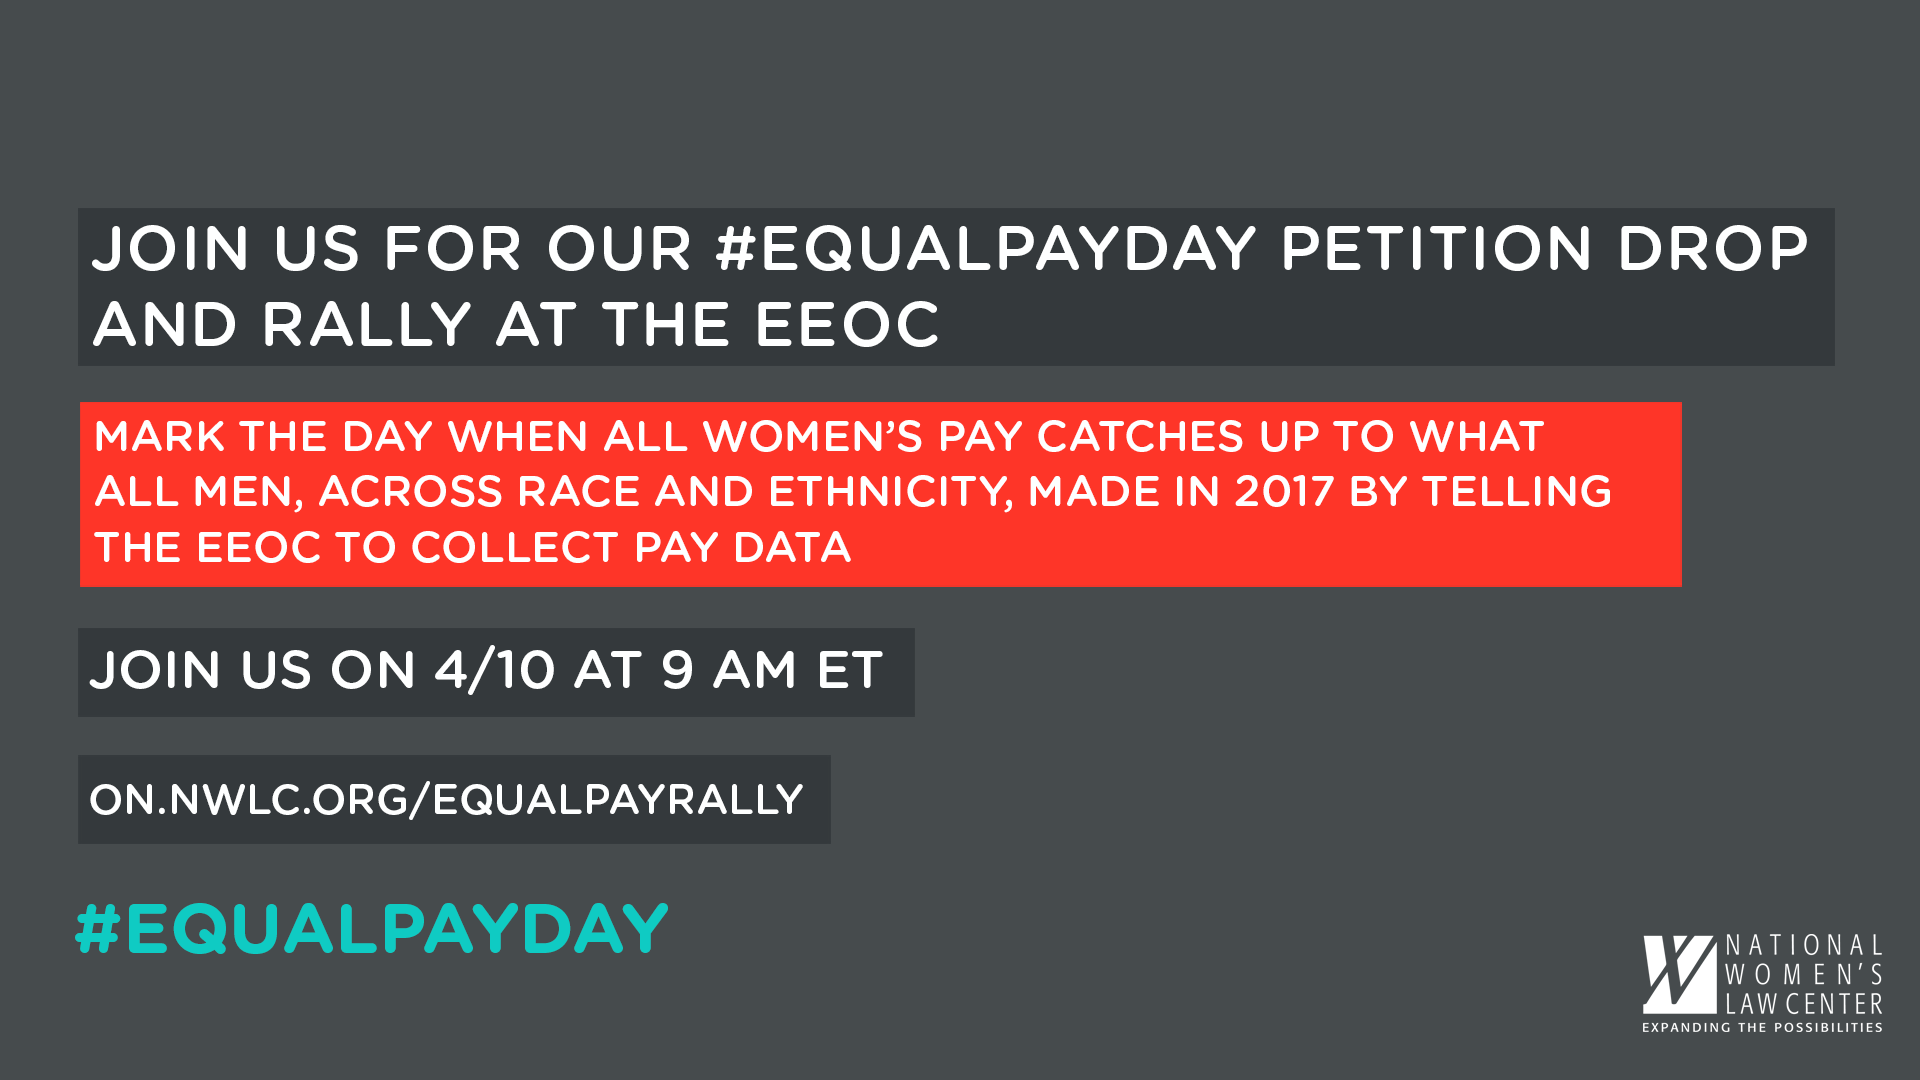 Equal Pay Day 2018: Time for Transparency   Petition Delivery Event   April 10, 2018 @ 9:00 AM U.S. Equal Employment Opportunity Commission  131 M St NE, Washington, DC 20002     FACEBOOK EVENT LINK      SIGN THE PETITION    Almost eight months ago, the Office of Management and Budget (OMB) issued an immediate stay on the U.S. Equal Employment Opportunity Commission (EEOC) requirement that businesses with over 100 employees collect pay data by gender, race, and ethnicity. In response, the National Women's Law Center, the Labor Council for Latin American Advancement, and Democracy Forward sued OMB to lift the stay and allow the EEOC to reestablish the equal pay data collection. Together with many coalition partners we also collected thousands of petition signatures urging the EEOC to move forward with its mission to prevent, stop, and remedy unlawful pay discrimination through a revised pay data collection proposal.  We're well into 2018, and while OMB's stay remains in place, it's now incumbent upon the EEOC to craft a new path forward. One of the best ways to ensure equal pay is to increase transparency around pay and ensure race and gender wage gaps can't be hidden under the rug.  This April 10 a large coalition of equal pay advocacy organizations will observe Equal Pay Day – the symbolic date representing how far into the current year women have to work in order to catch up to what men were paid by the end of the last year– by gathering outside of the EEOC to urge the agency take concrete steps to move the equal pay data collection forward.  We will deliver thousands of petitions to the EEOC and hold a rally that features the voices of those most impacted by the wage gap.  The petition delivery and speaking agenda will begin at 9:00 AM in front of the EEOC.